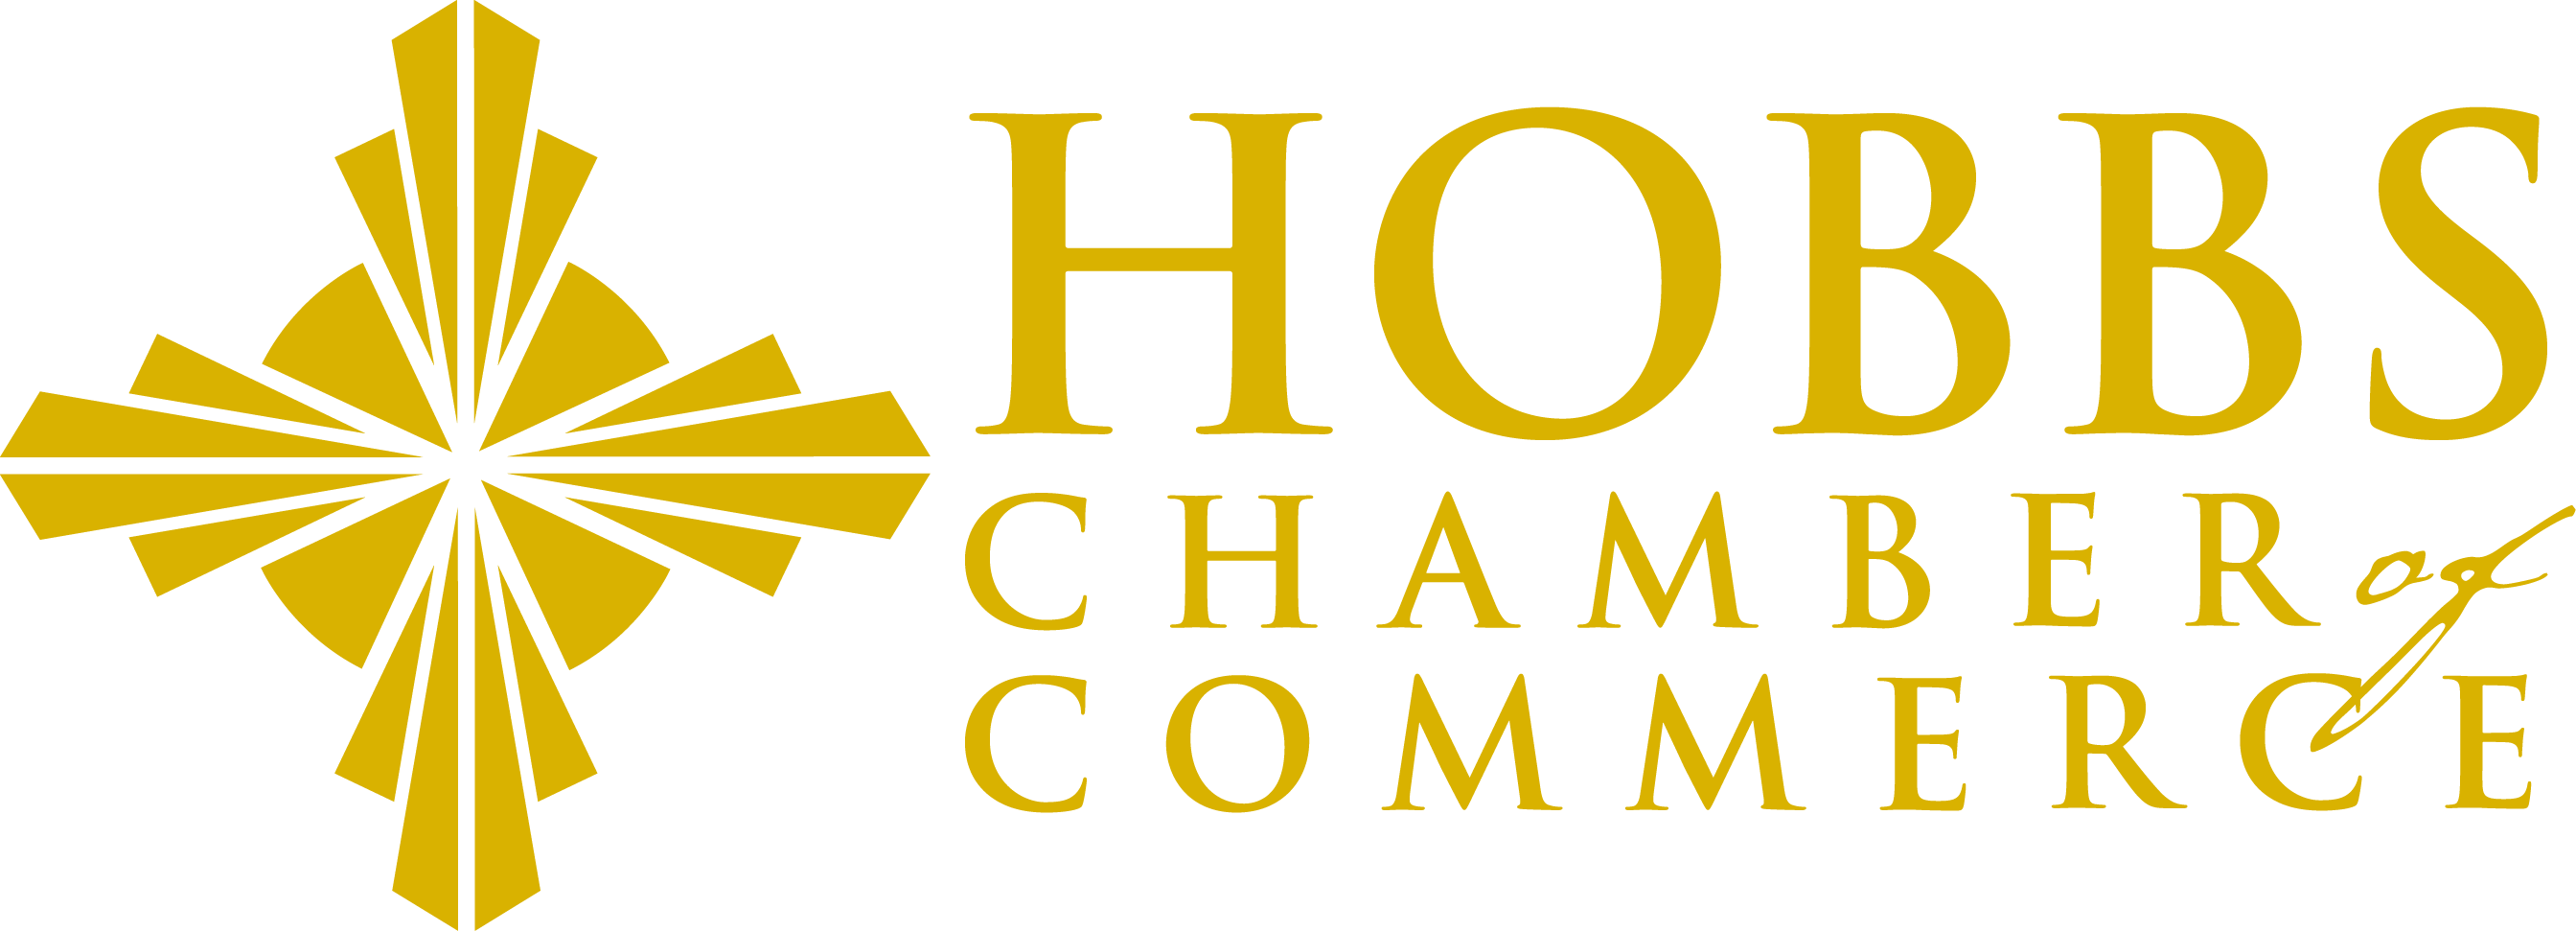 Gold text png. Downloads horizontal triple textpng